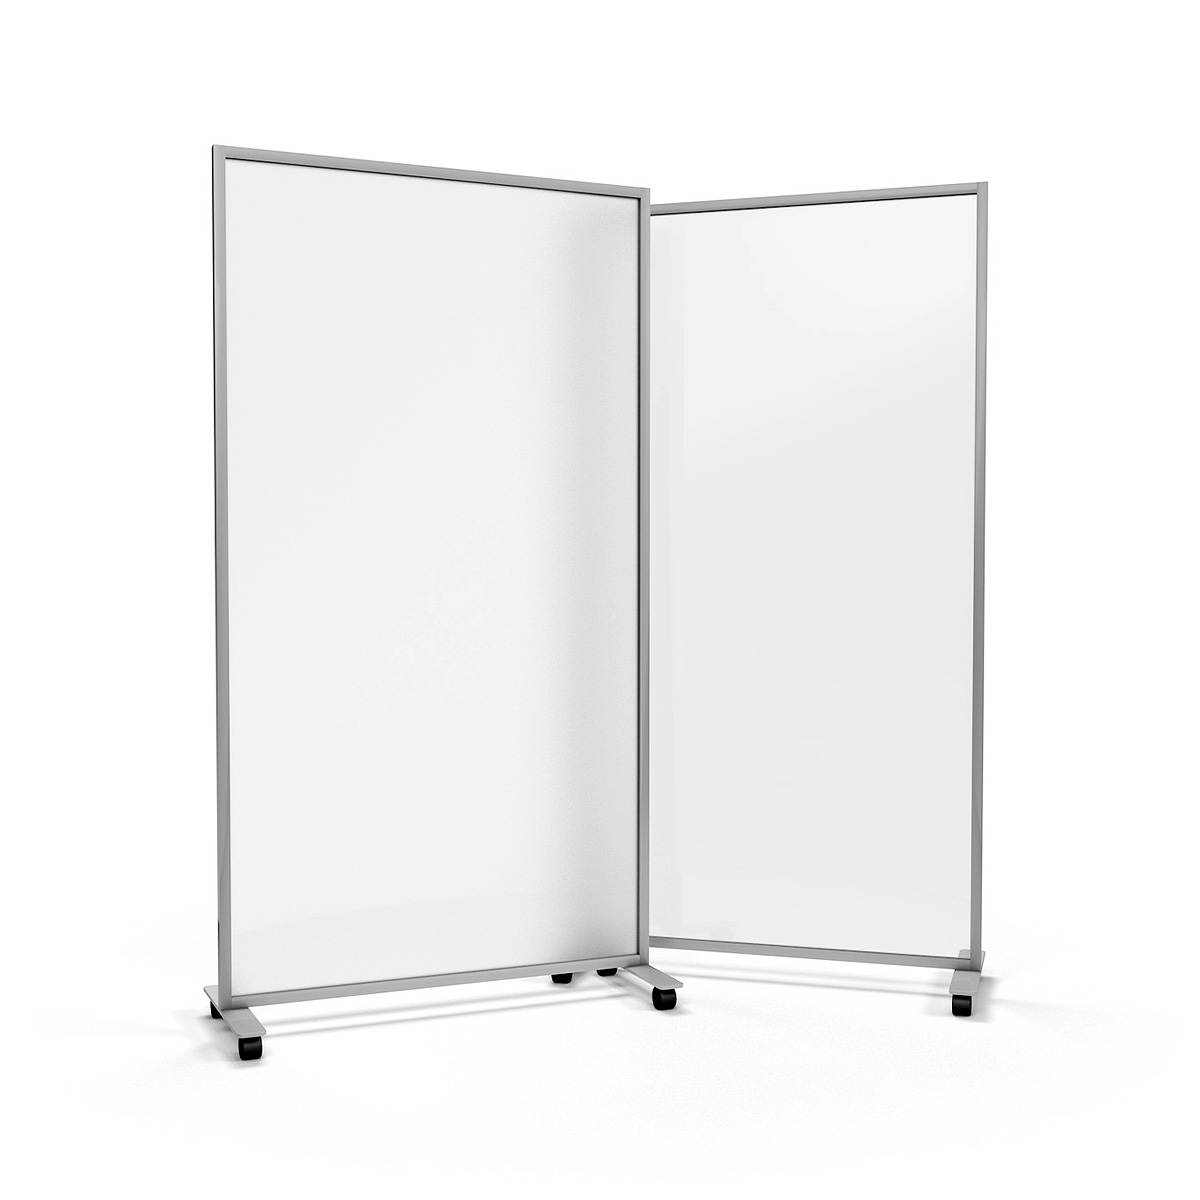 ACHOO<sup>®</sup> Frosted Perspex<sup>®</sup> Glass Office Divider on Wheels